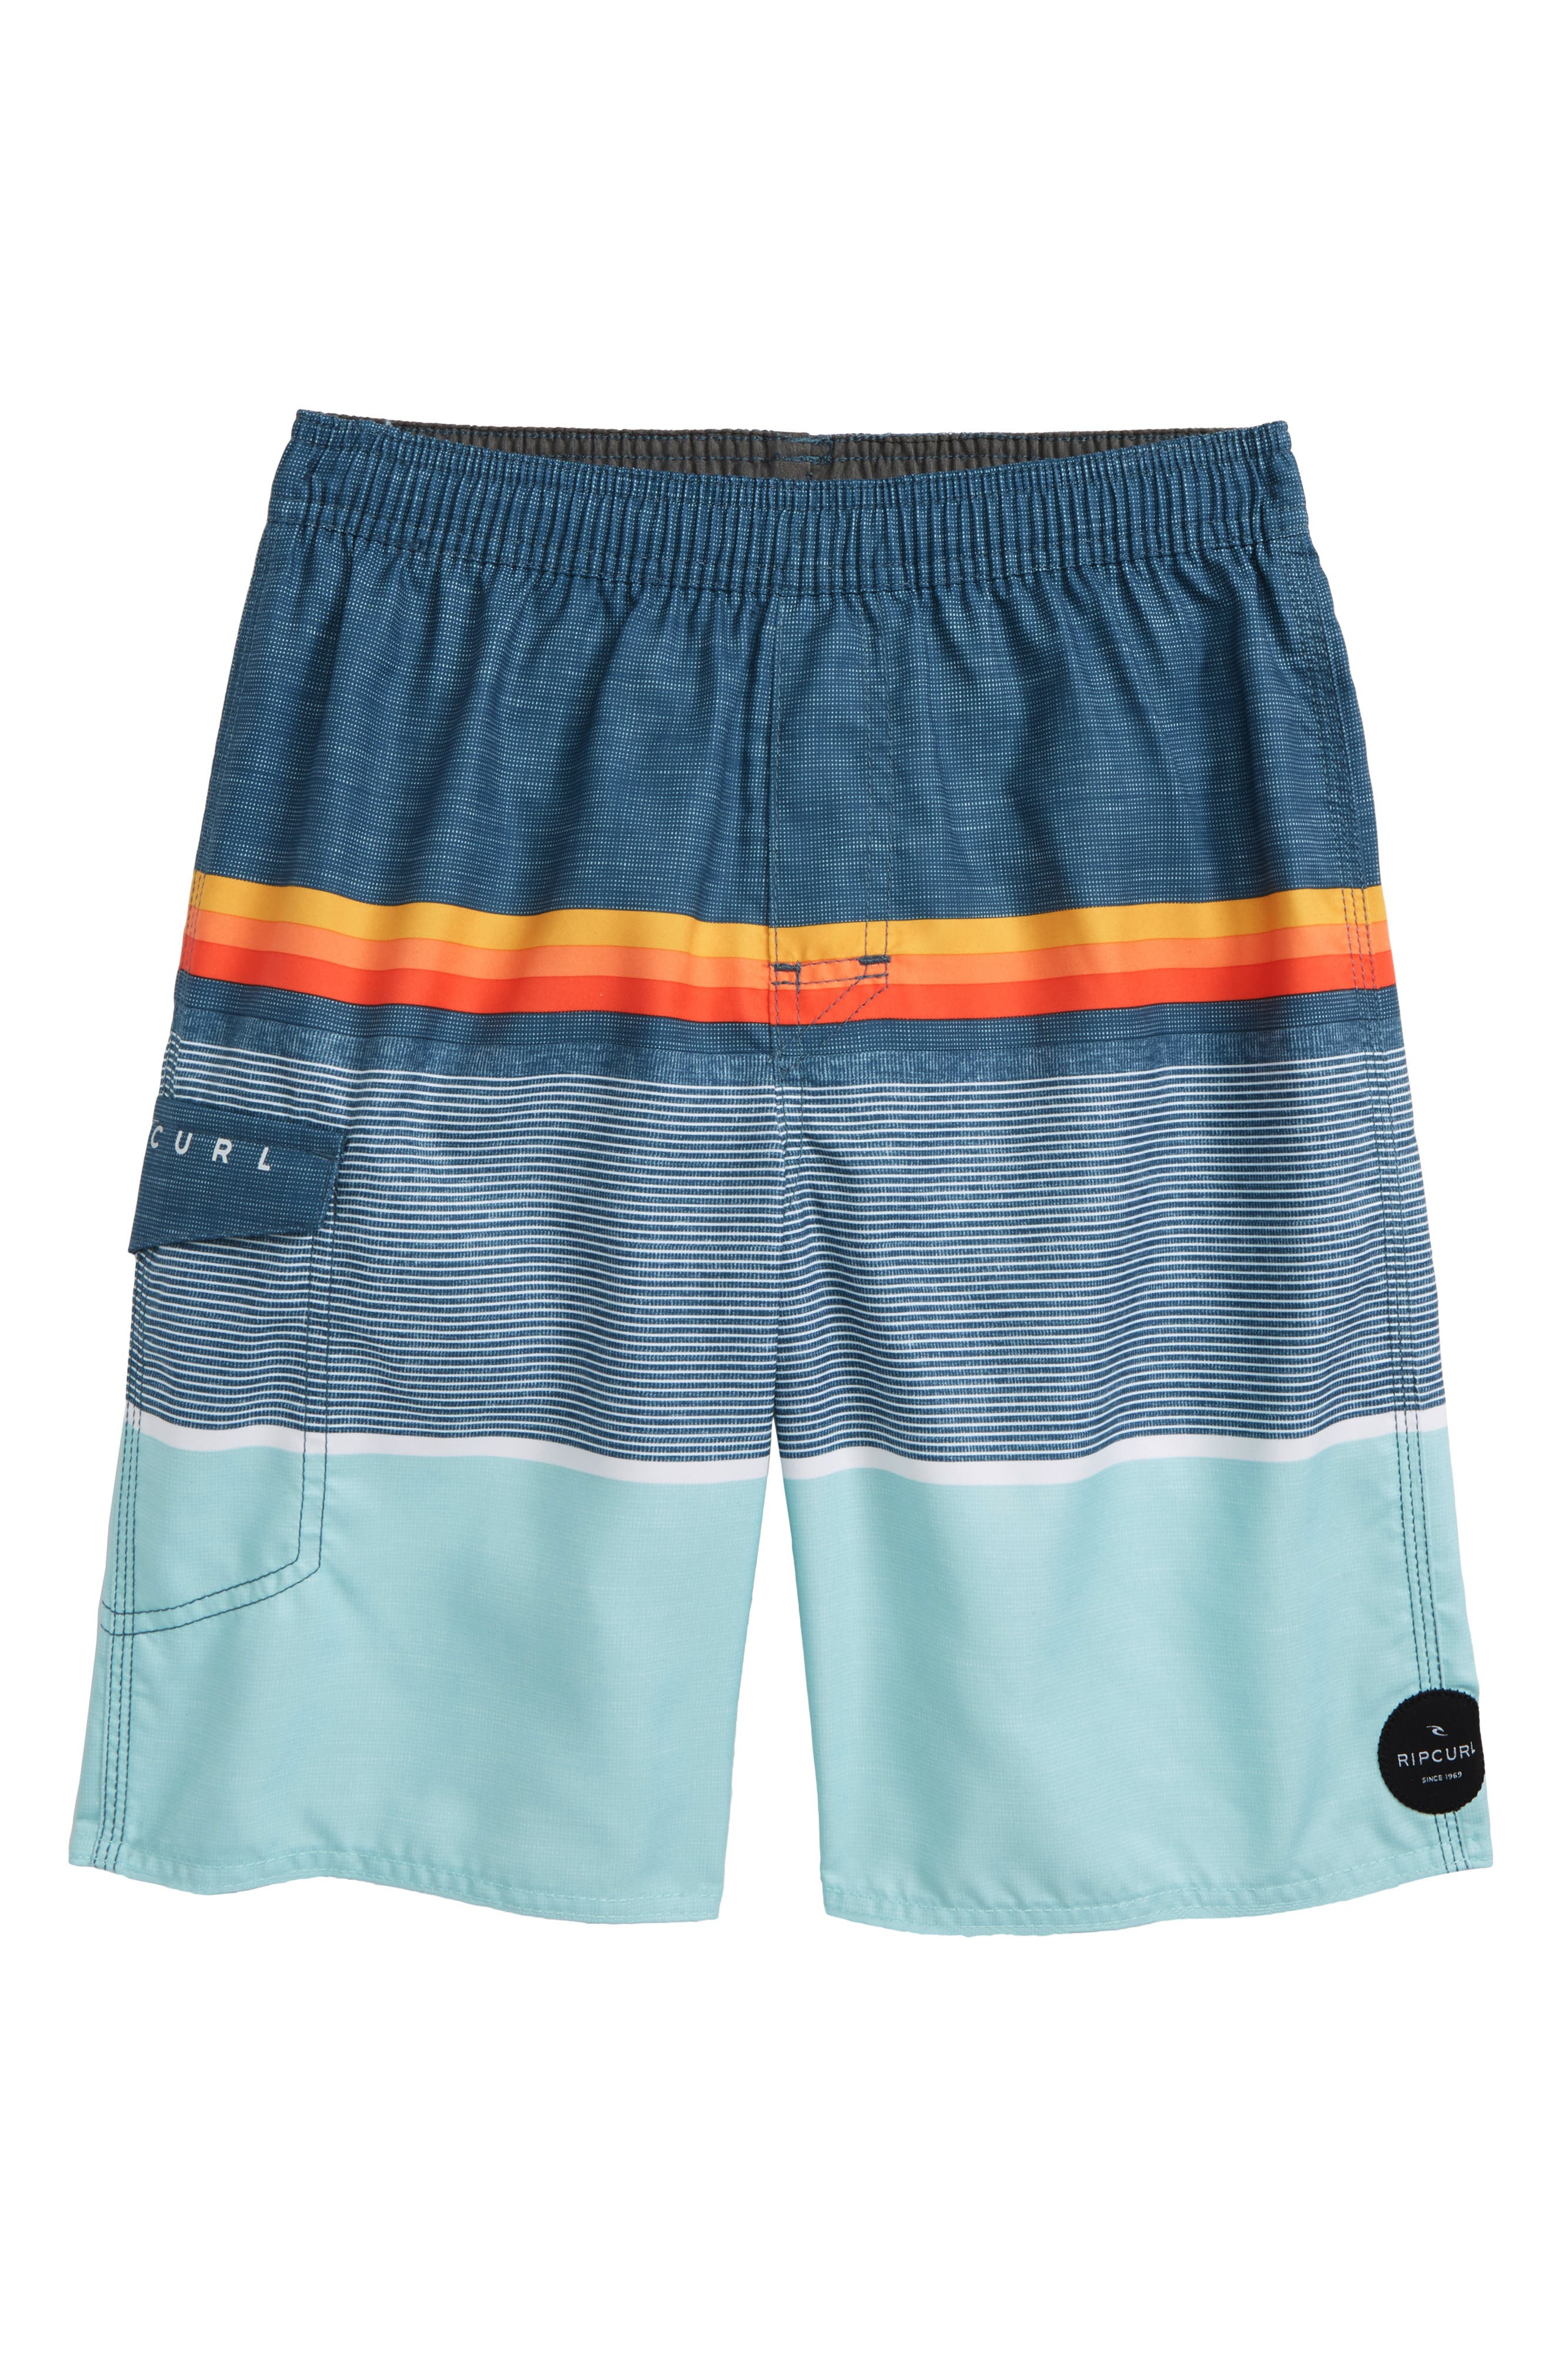 Rapture Volley Shorts,                         Main,                         color, 400